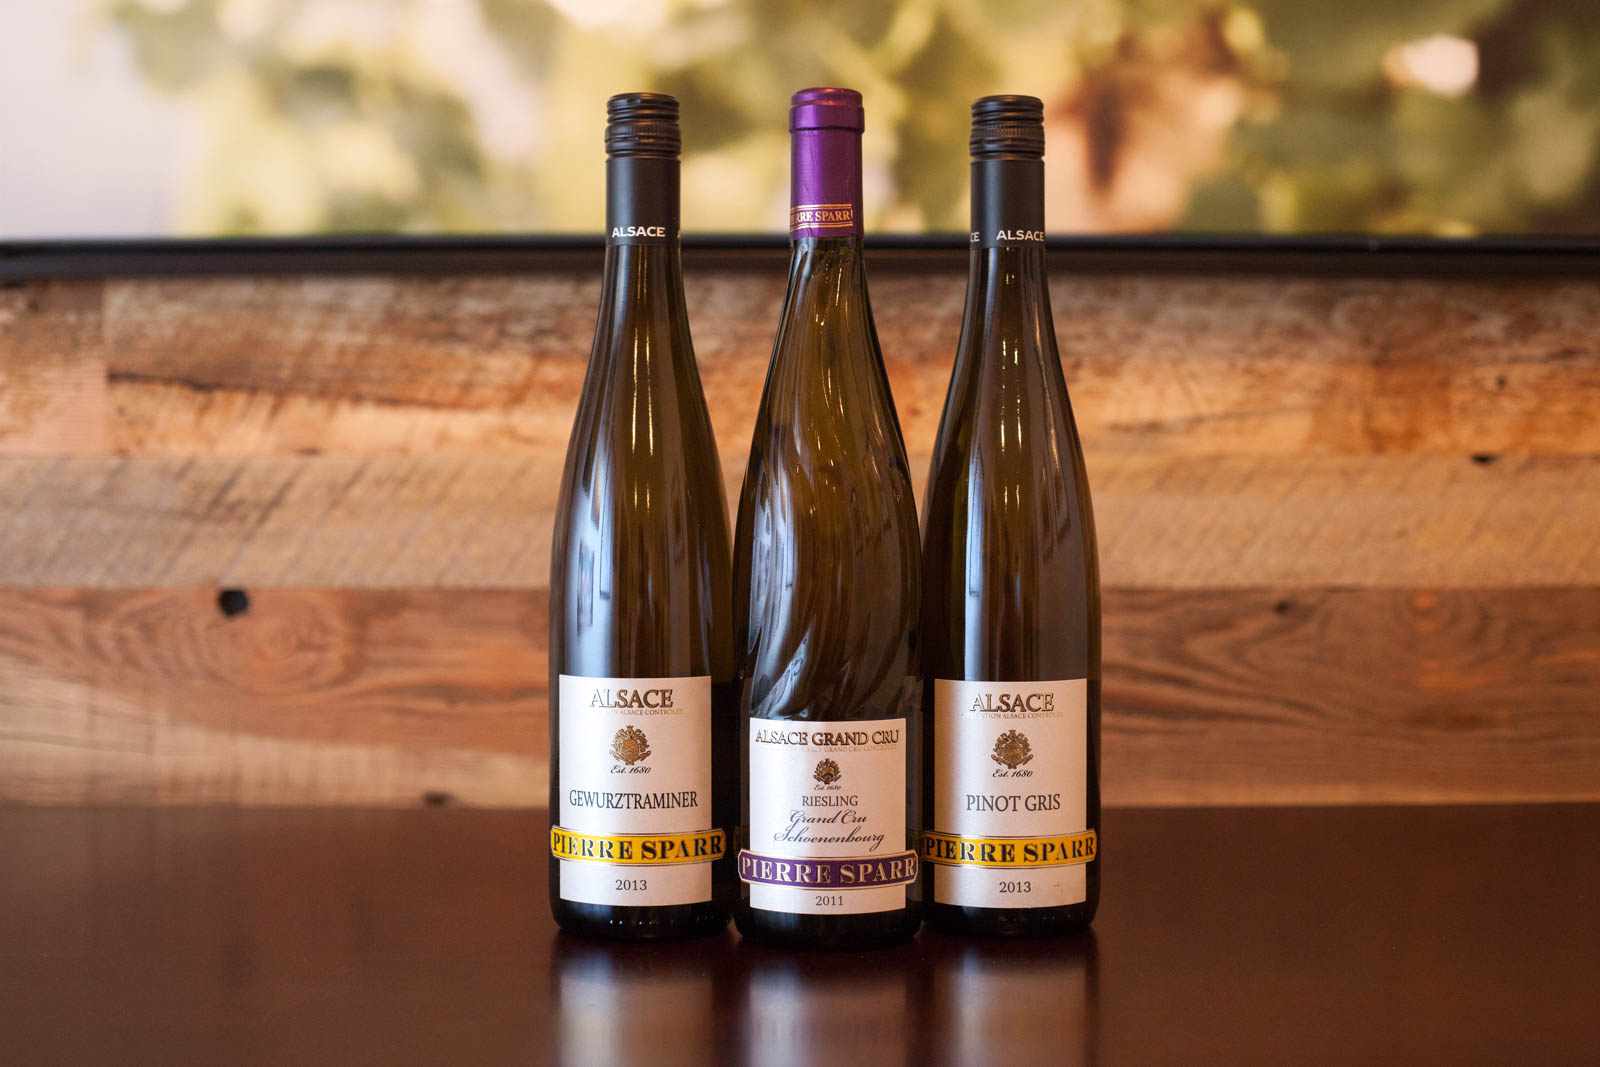 The wines of Pierre Sparr of Alsace